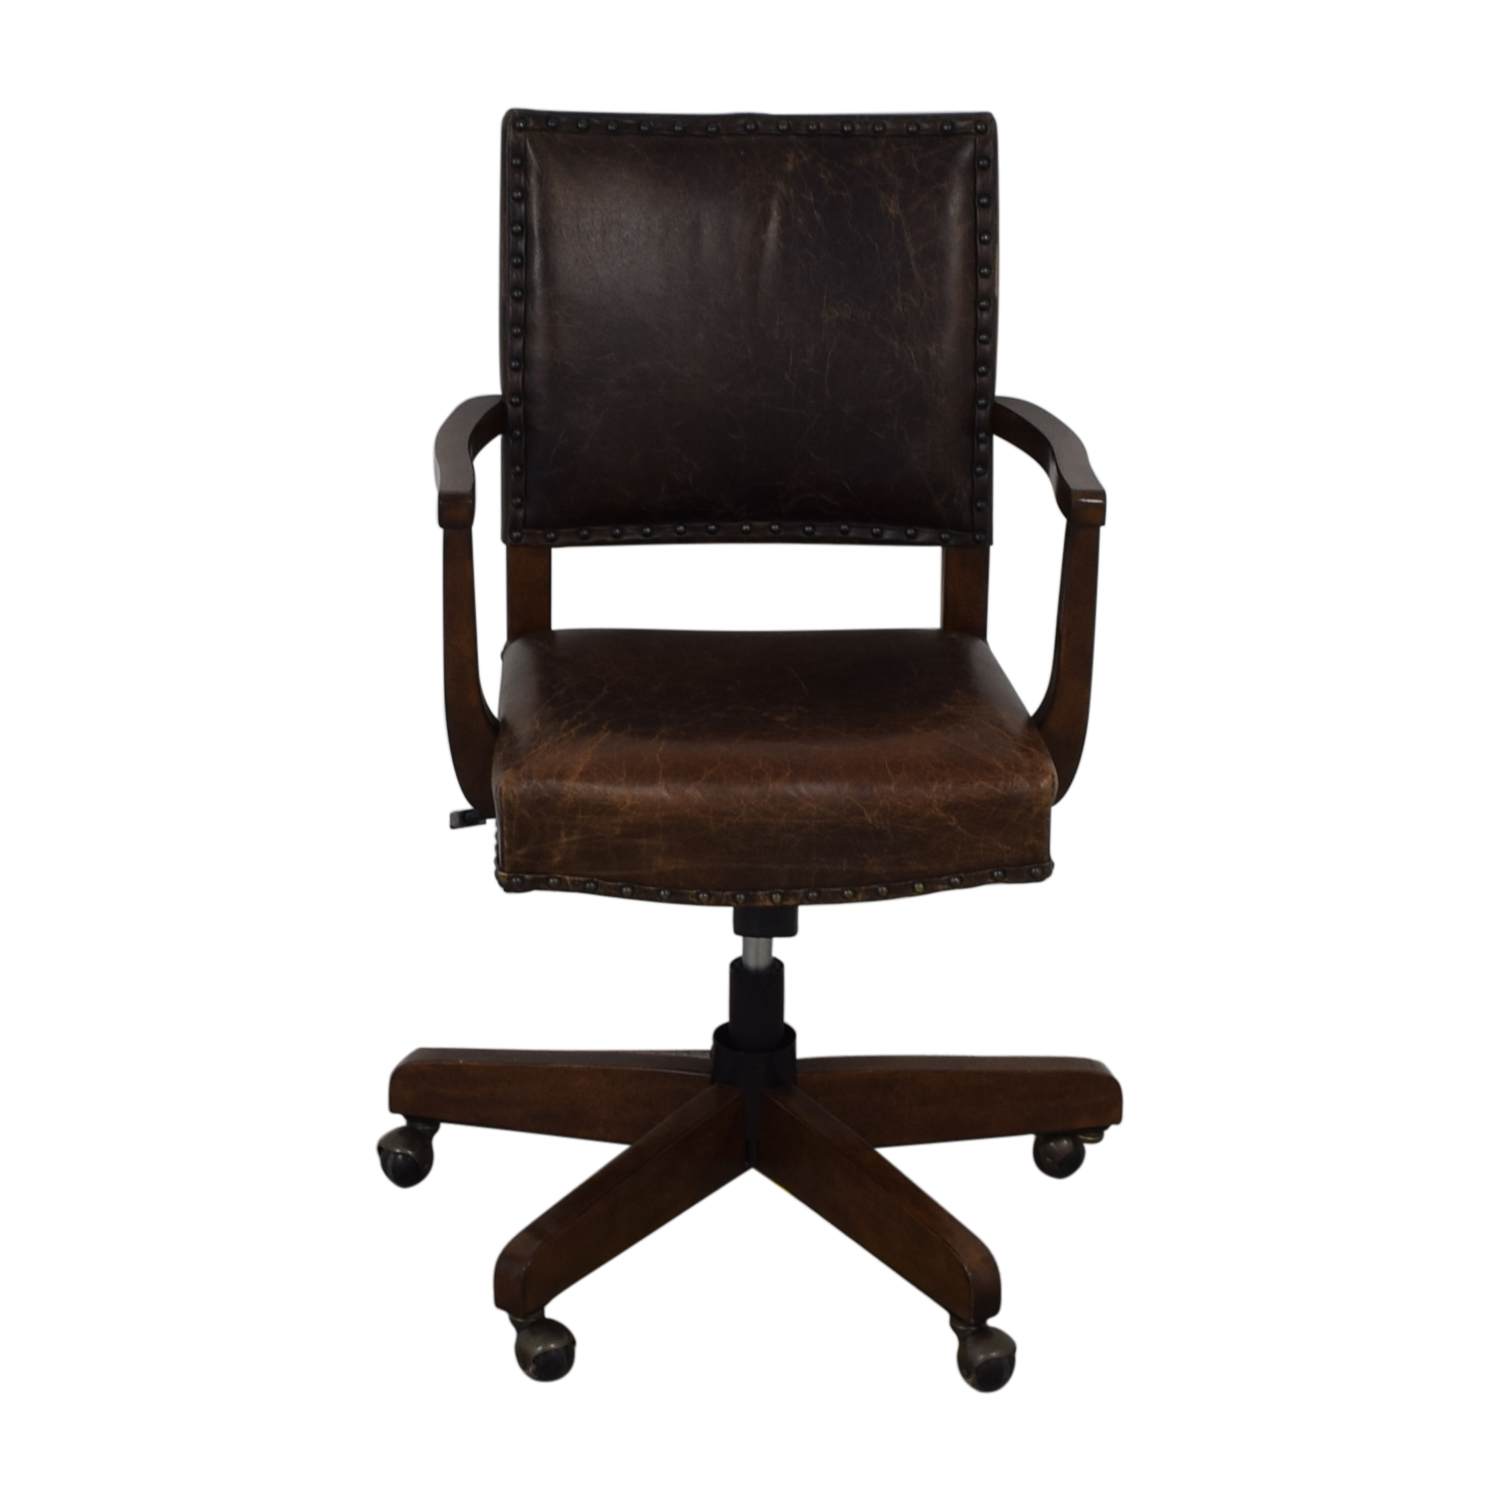 shop Pottery Barn Manchester Swivel Desk Chair Pottery Barn Chairs